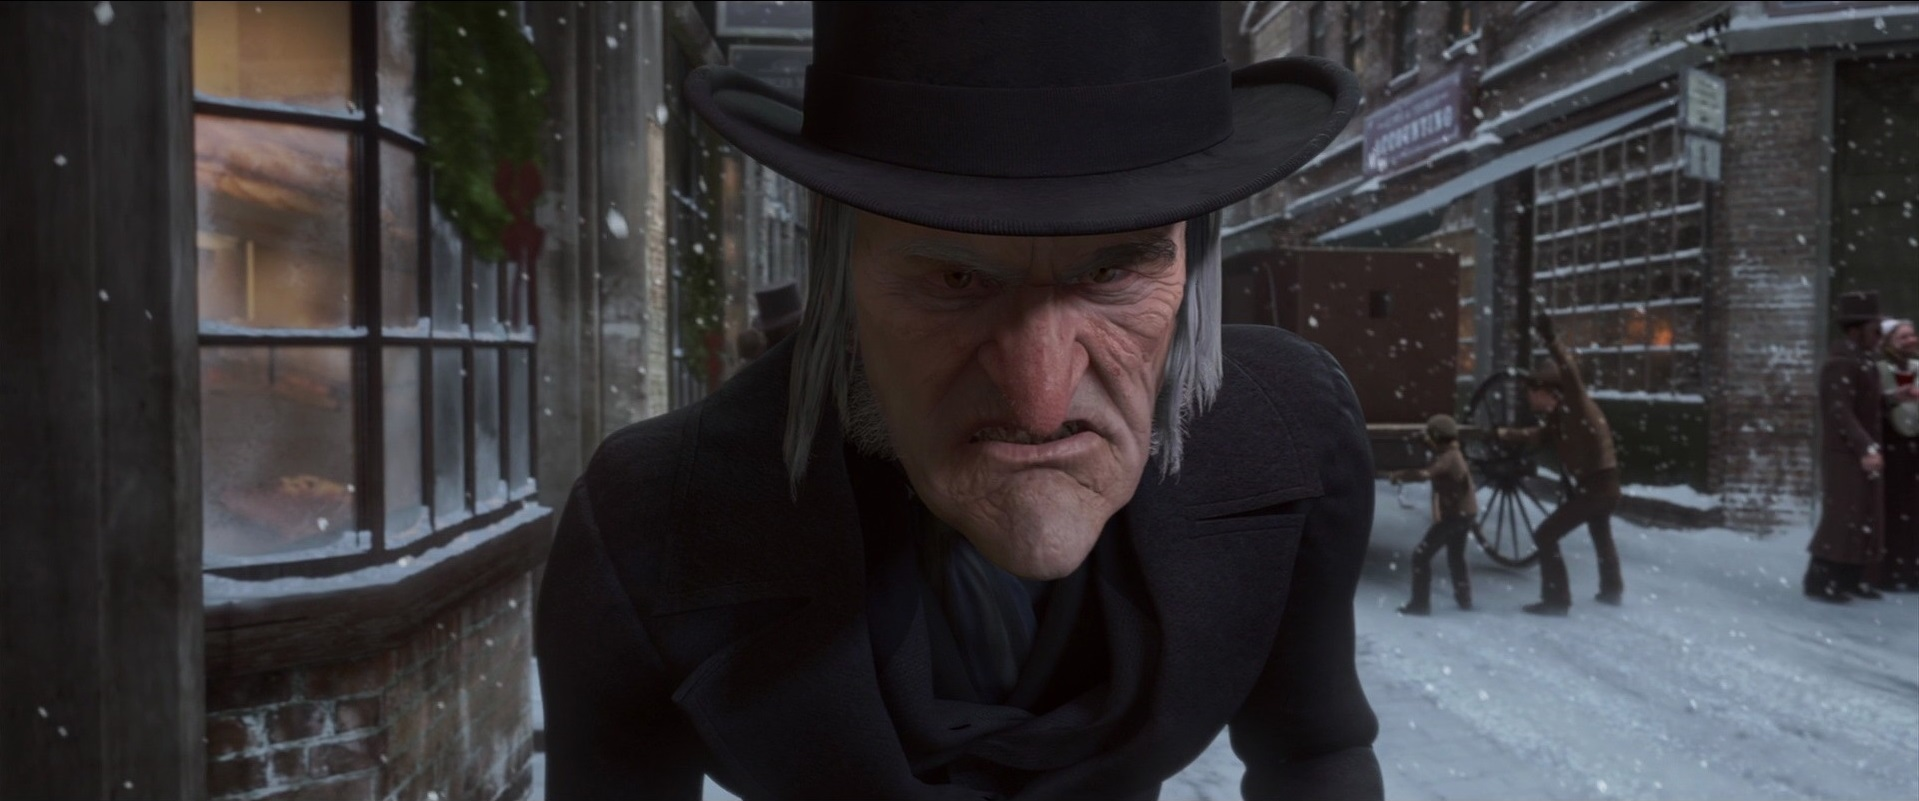 Ebenezer Scrooge from A Christmas Carolv(Source: Disney Wiki)